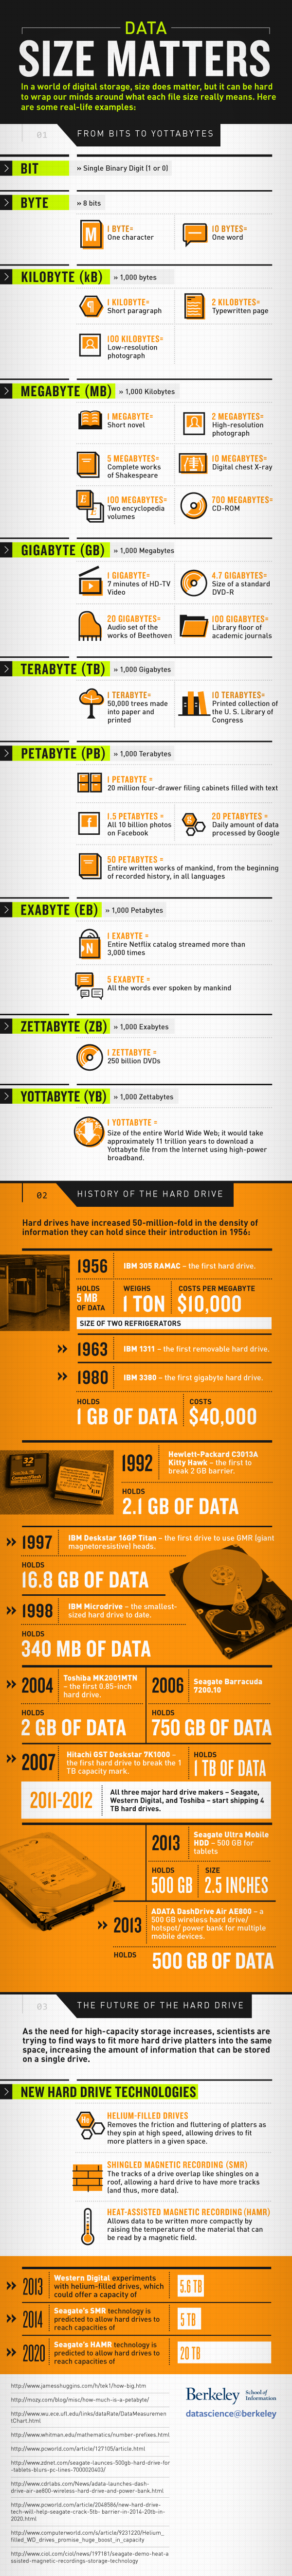 Data Size Matters [Infographic] - datascience@berkeley